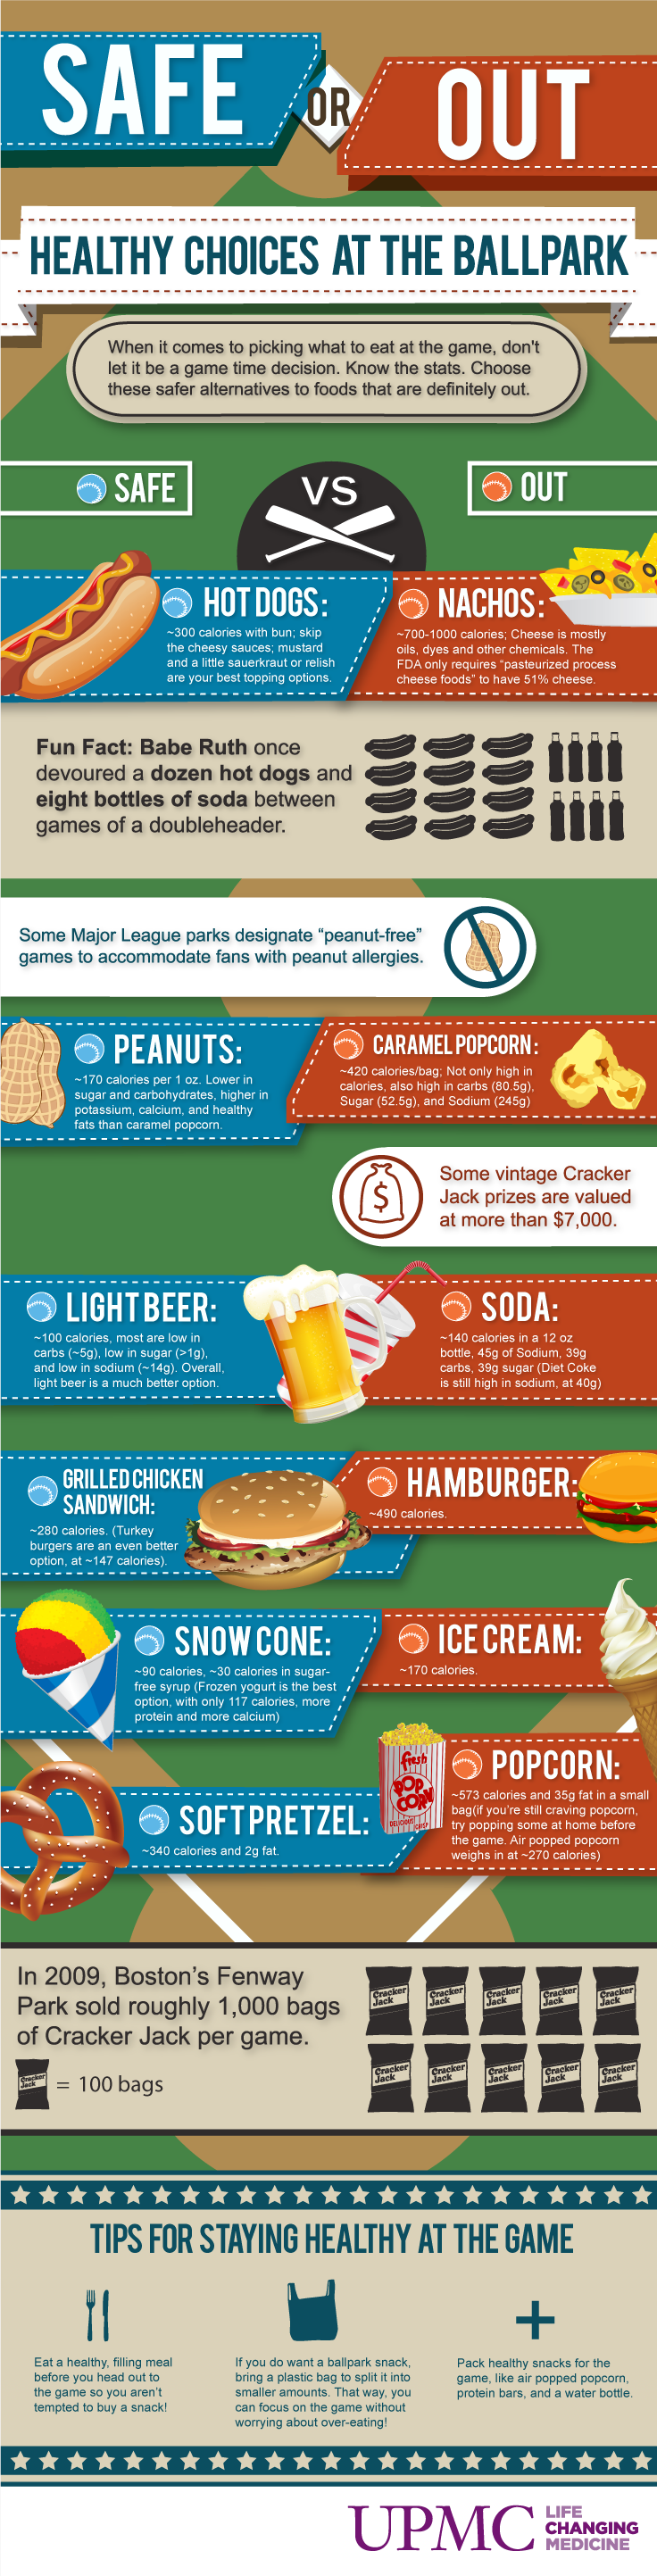 Ballpark Healthy Choices Infographic